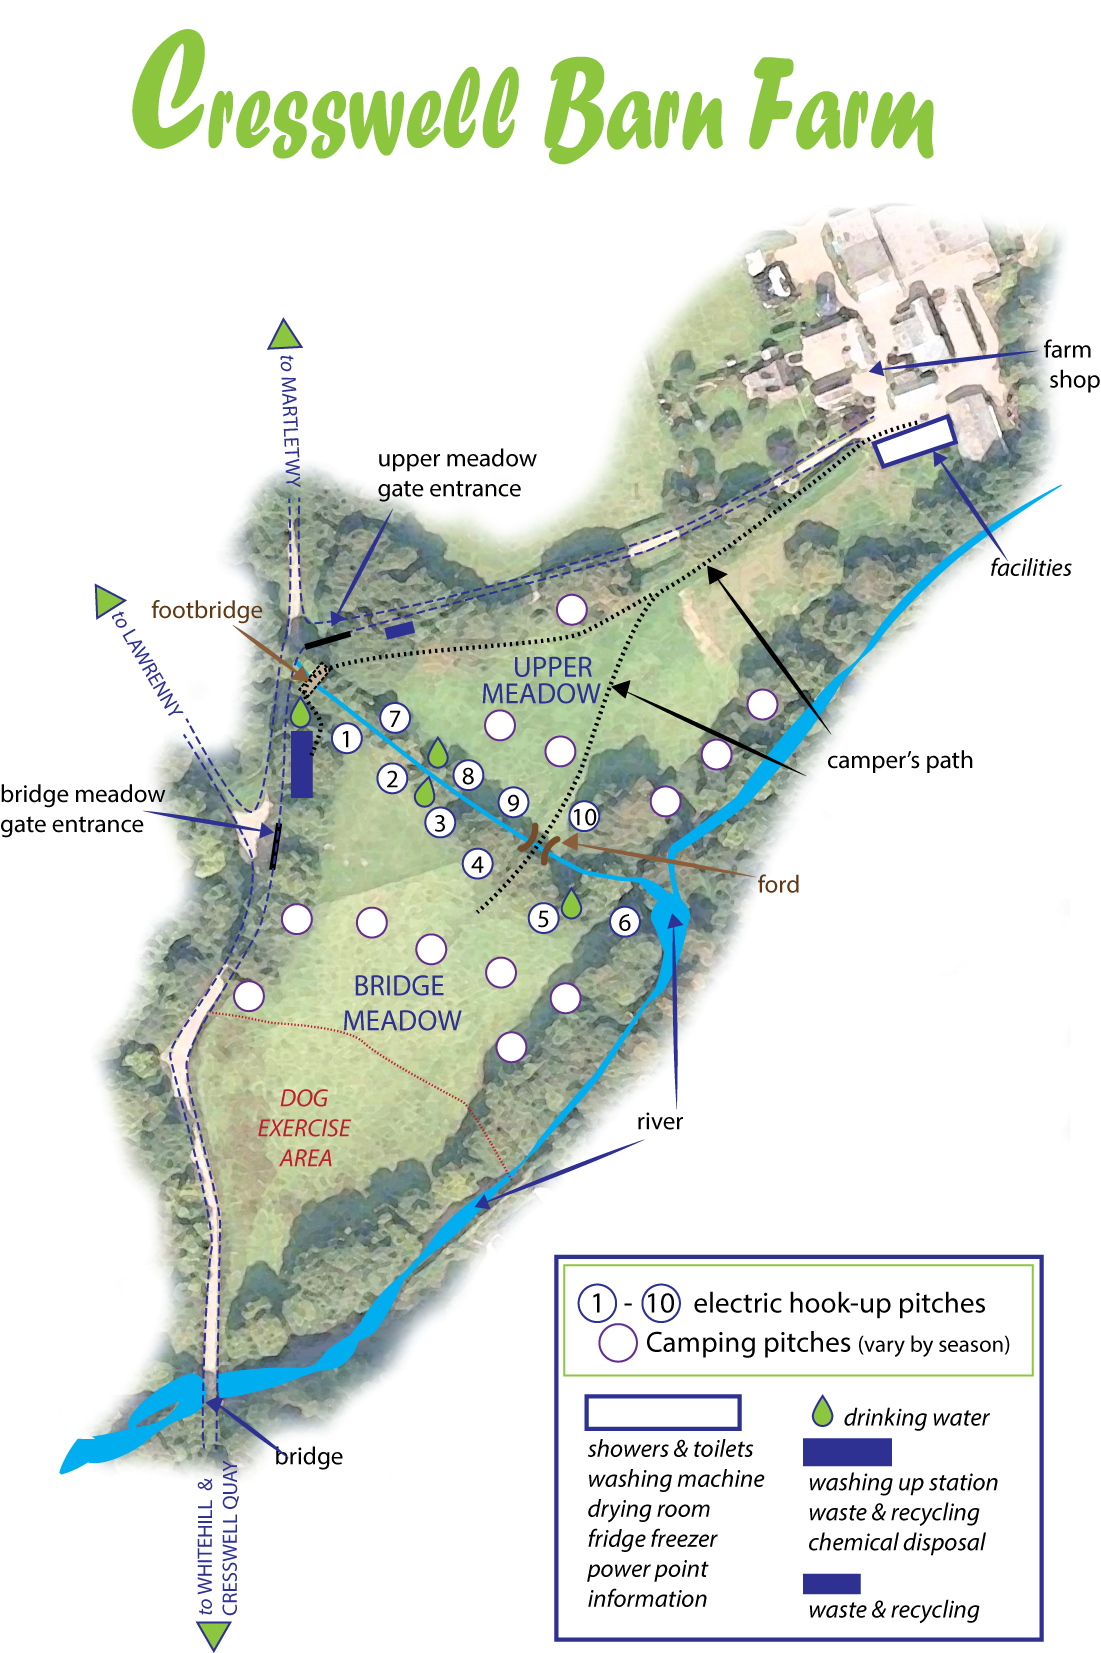 Crewell Barn Farm Campsite pitch and facility locations